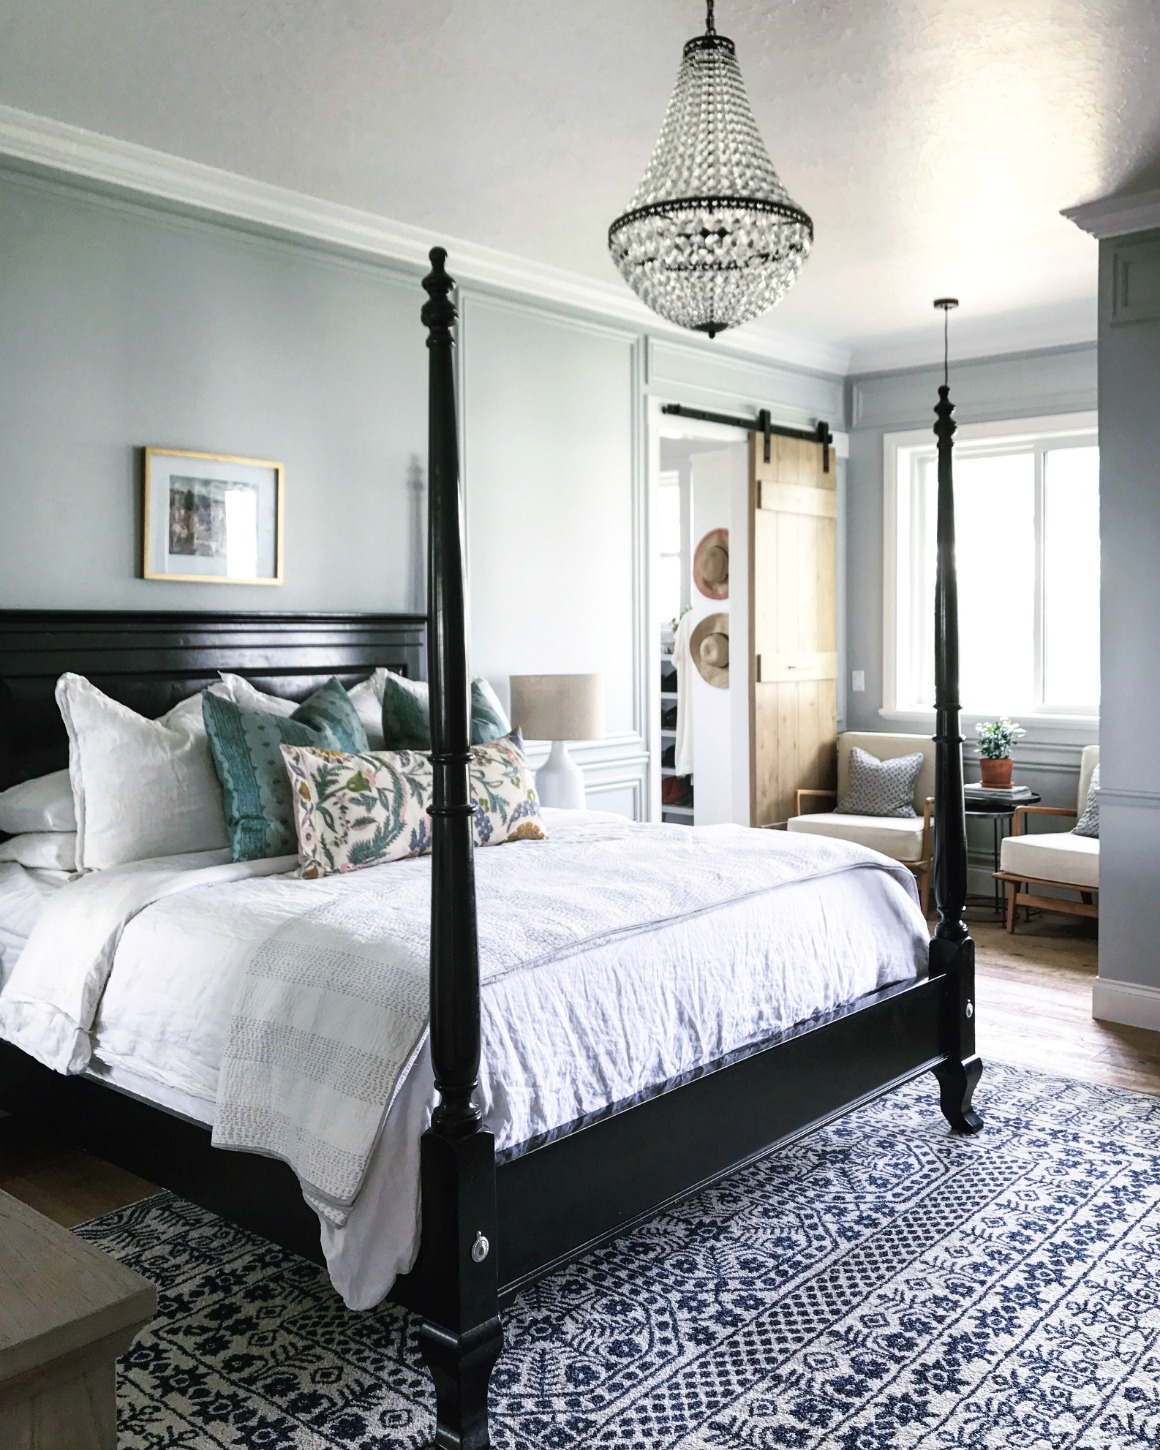 Grey Master Bedroom: Master Bedroom And Bath Tour- Mixing Old And New